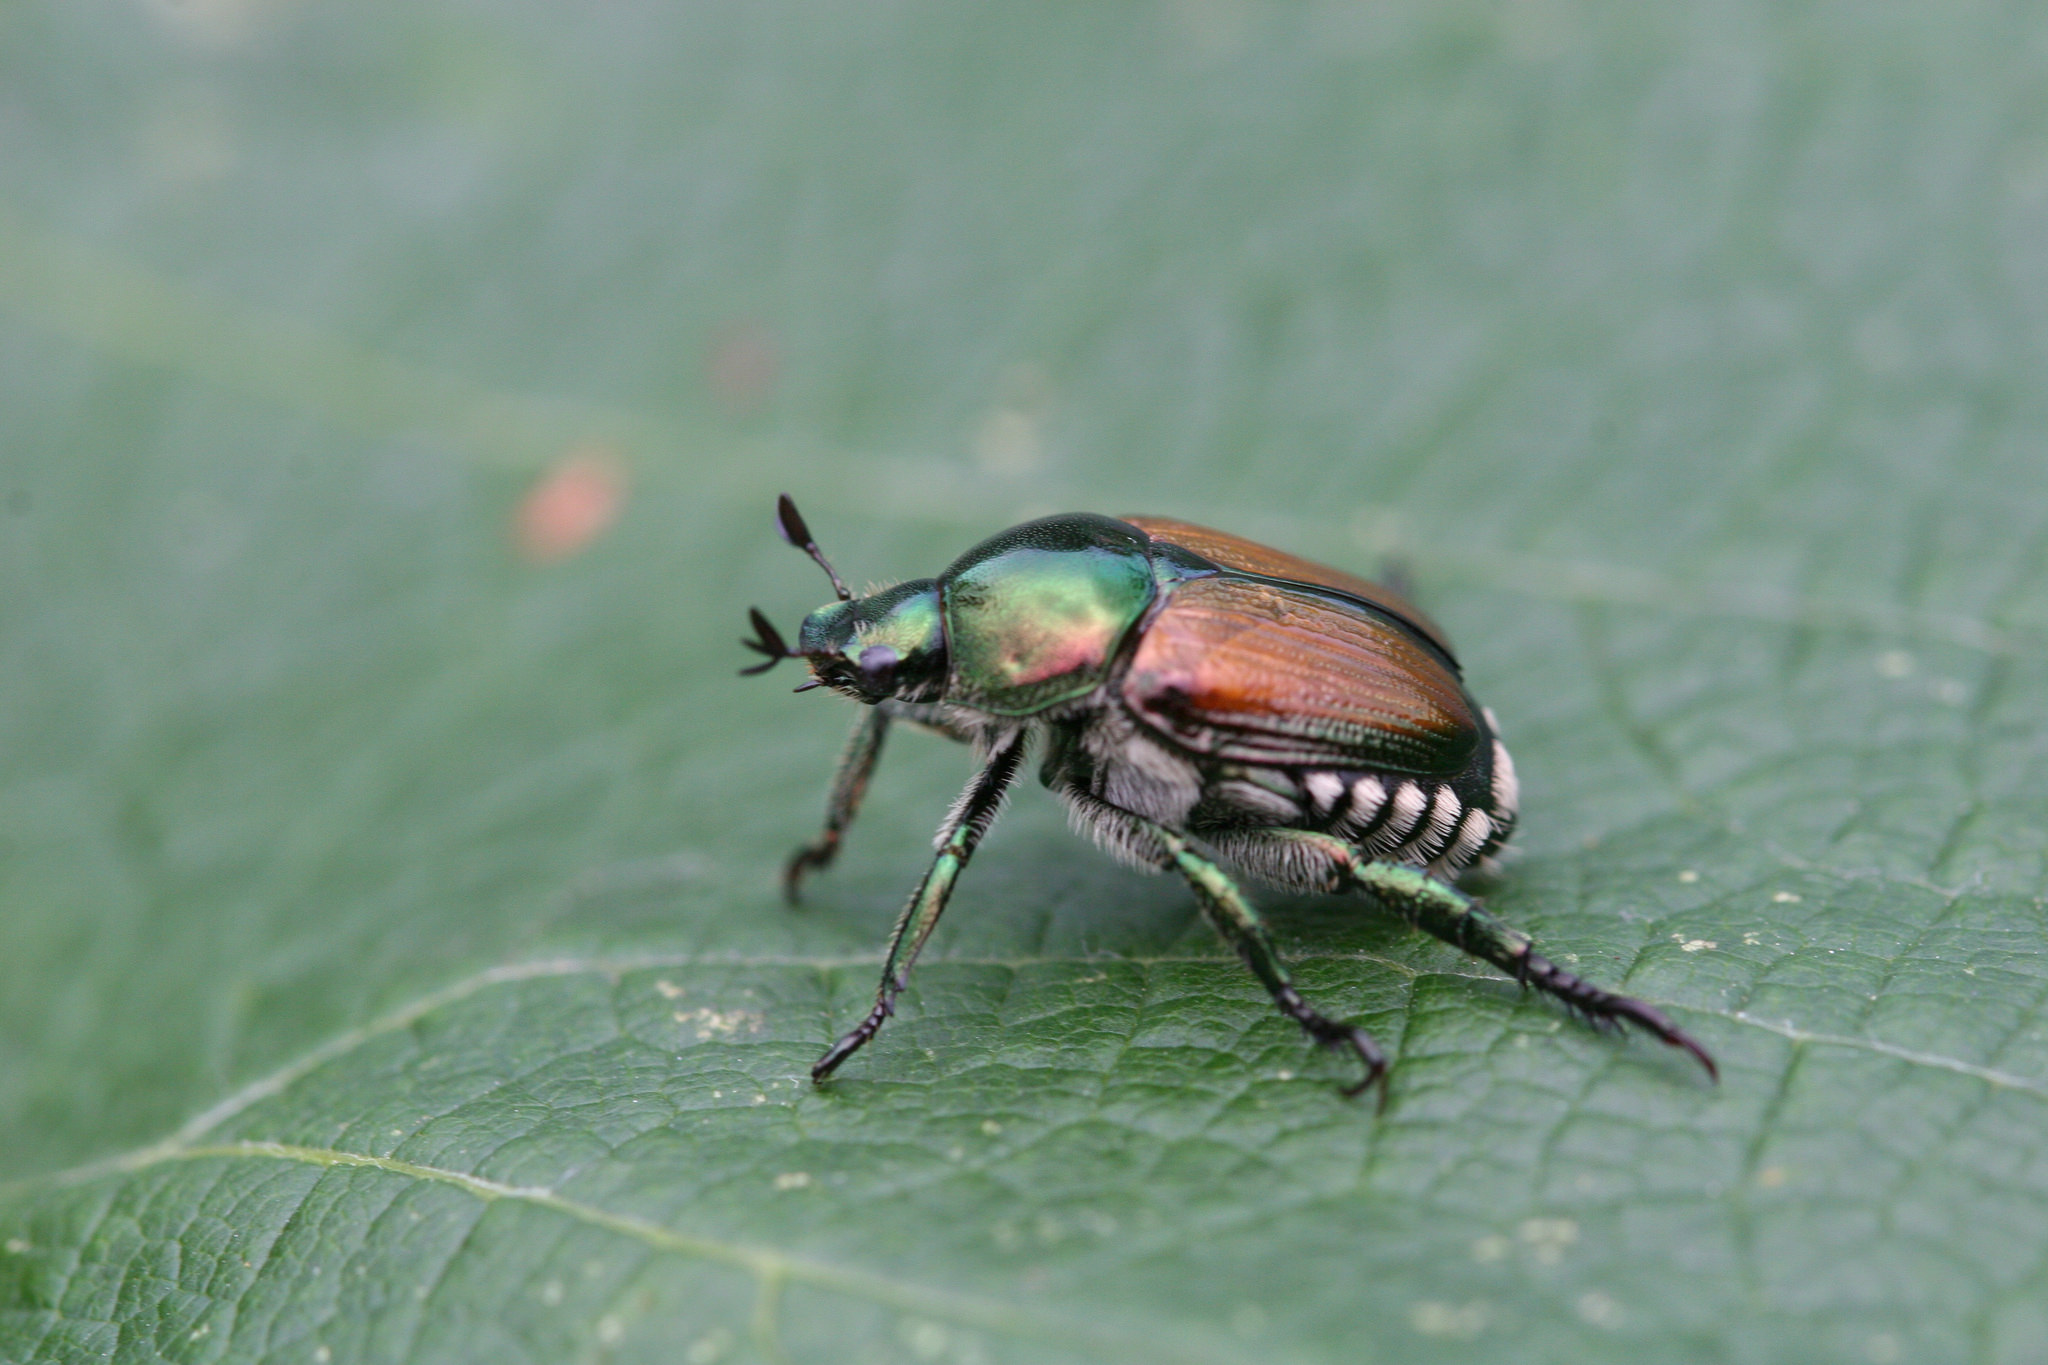 Japanese beetle - Native to Asia.Vineyards adjacent to pasture or sod fields are more susceptible to infestation.